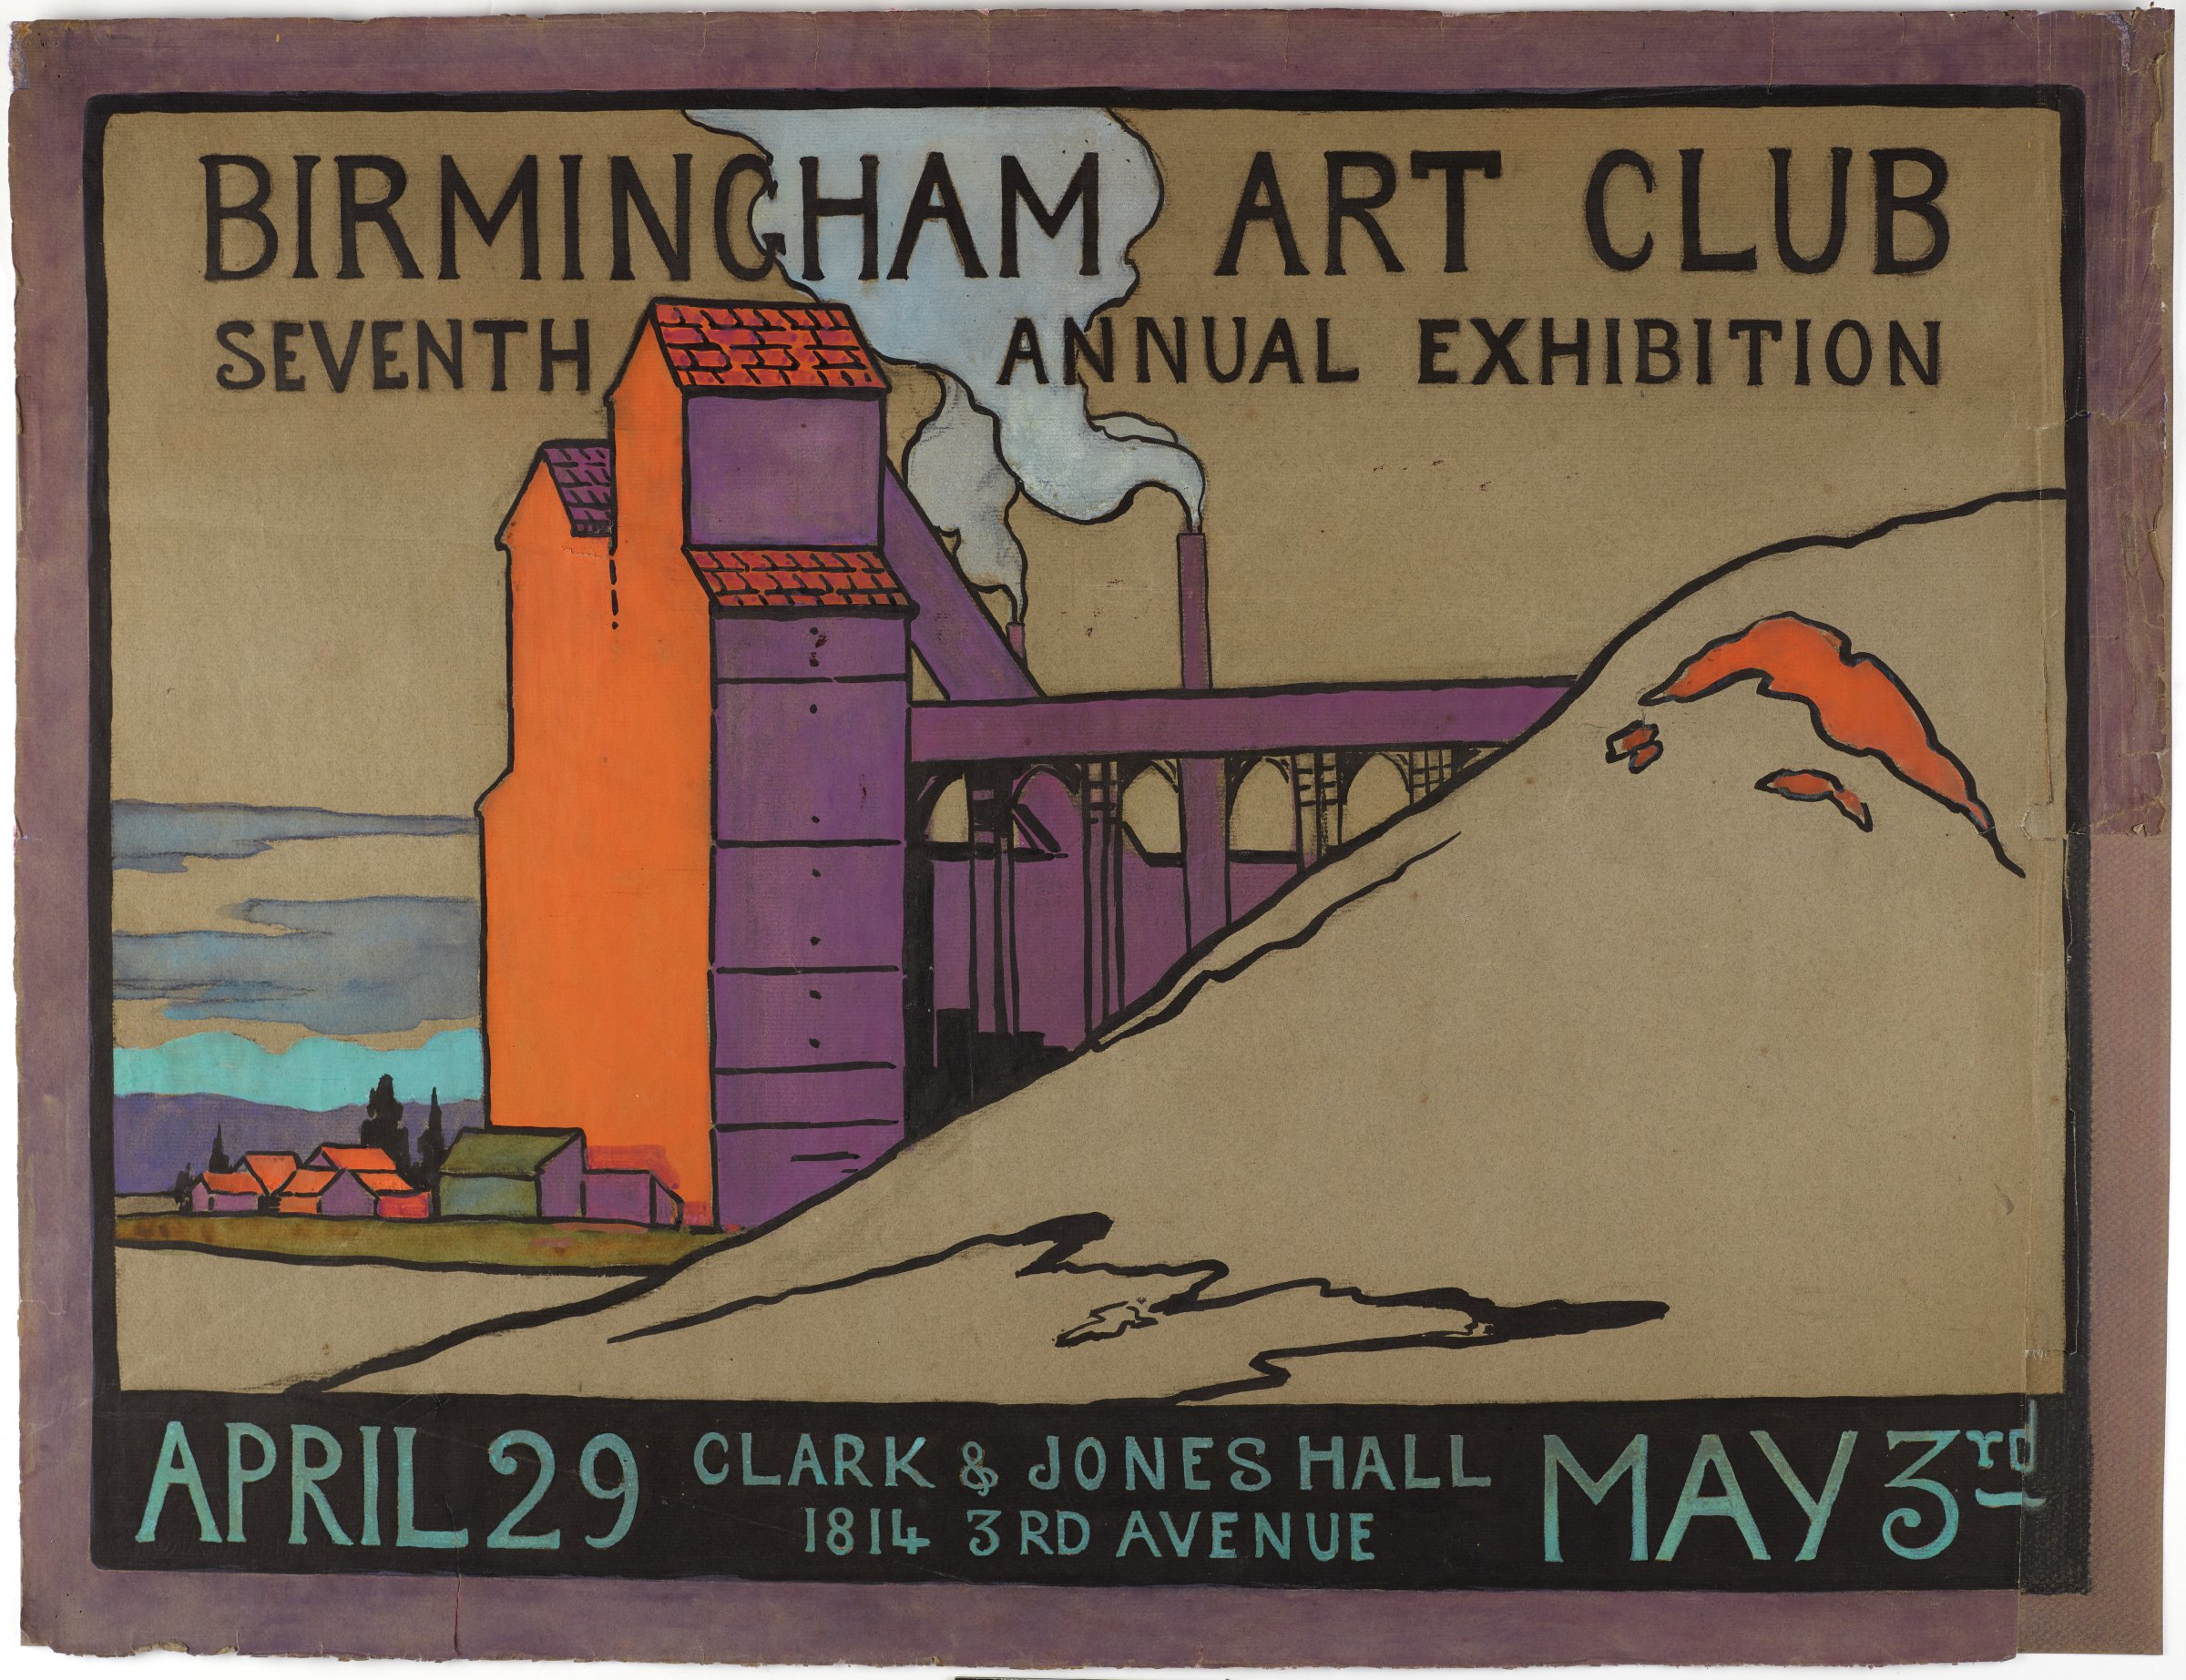 Poster for the Birmingham Art Club 7th Annual Exhibition, Lucille Douglass, watercolor and India ink on paper